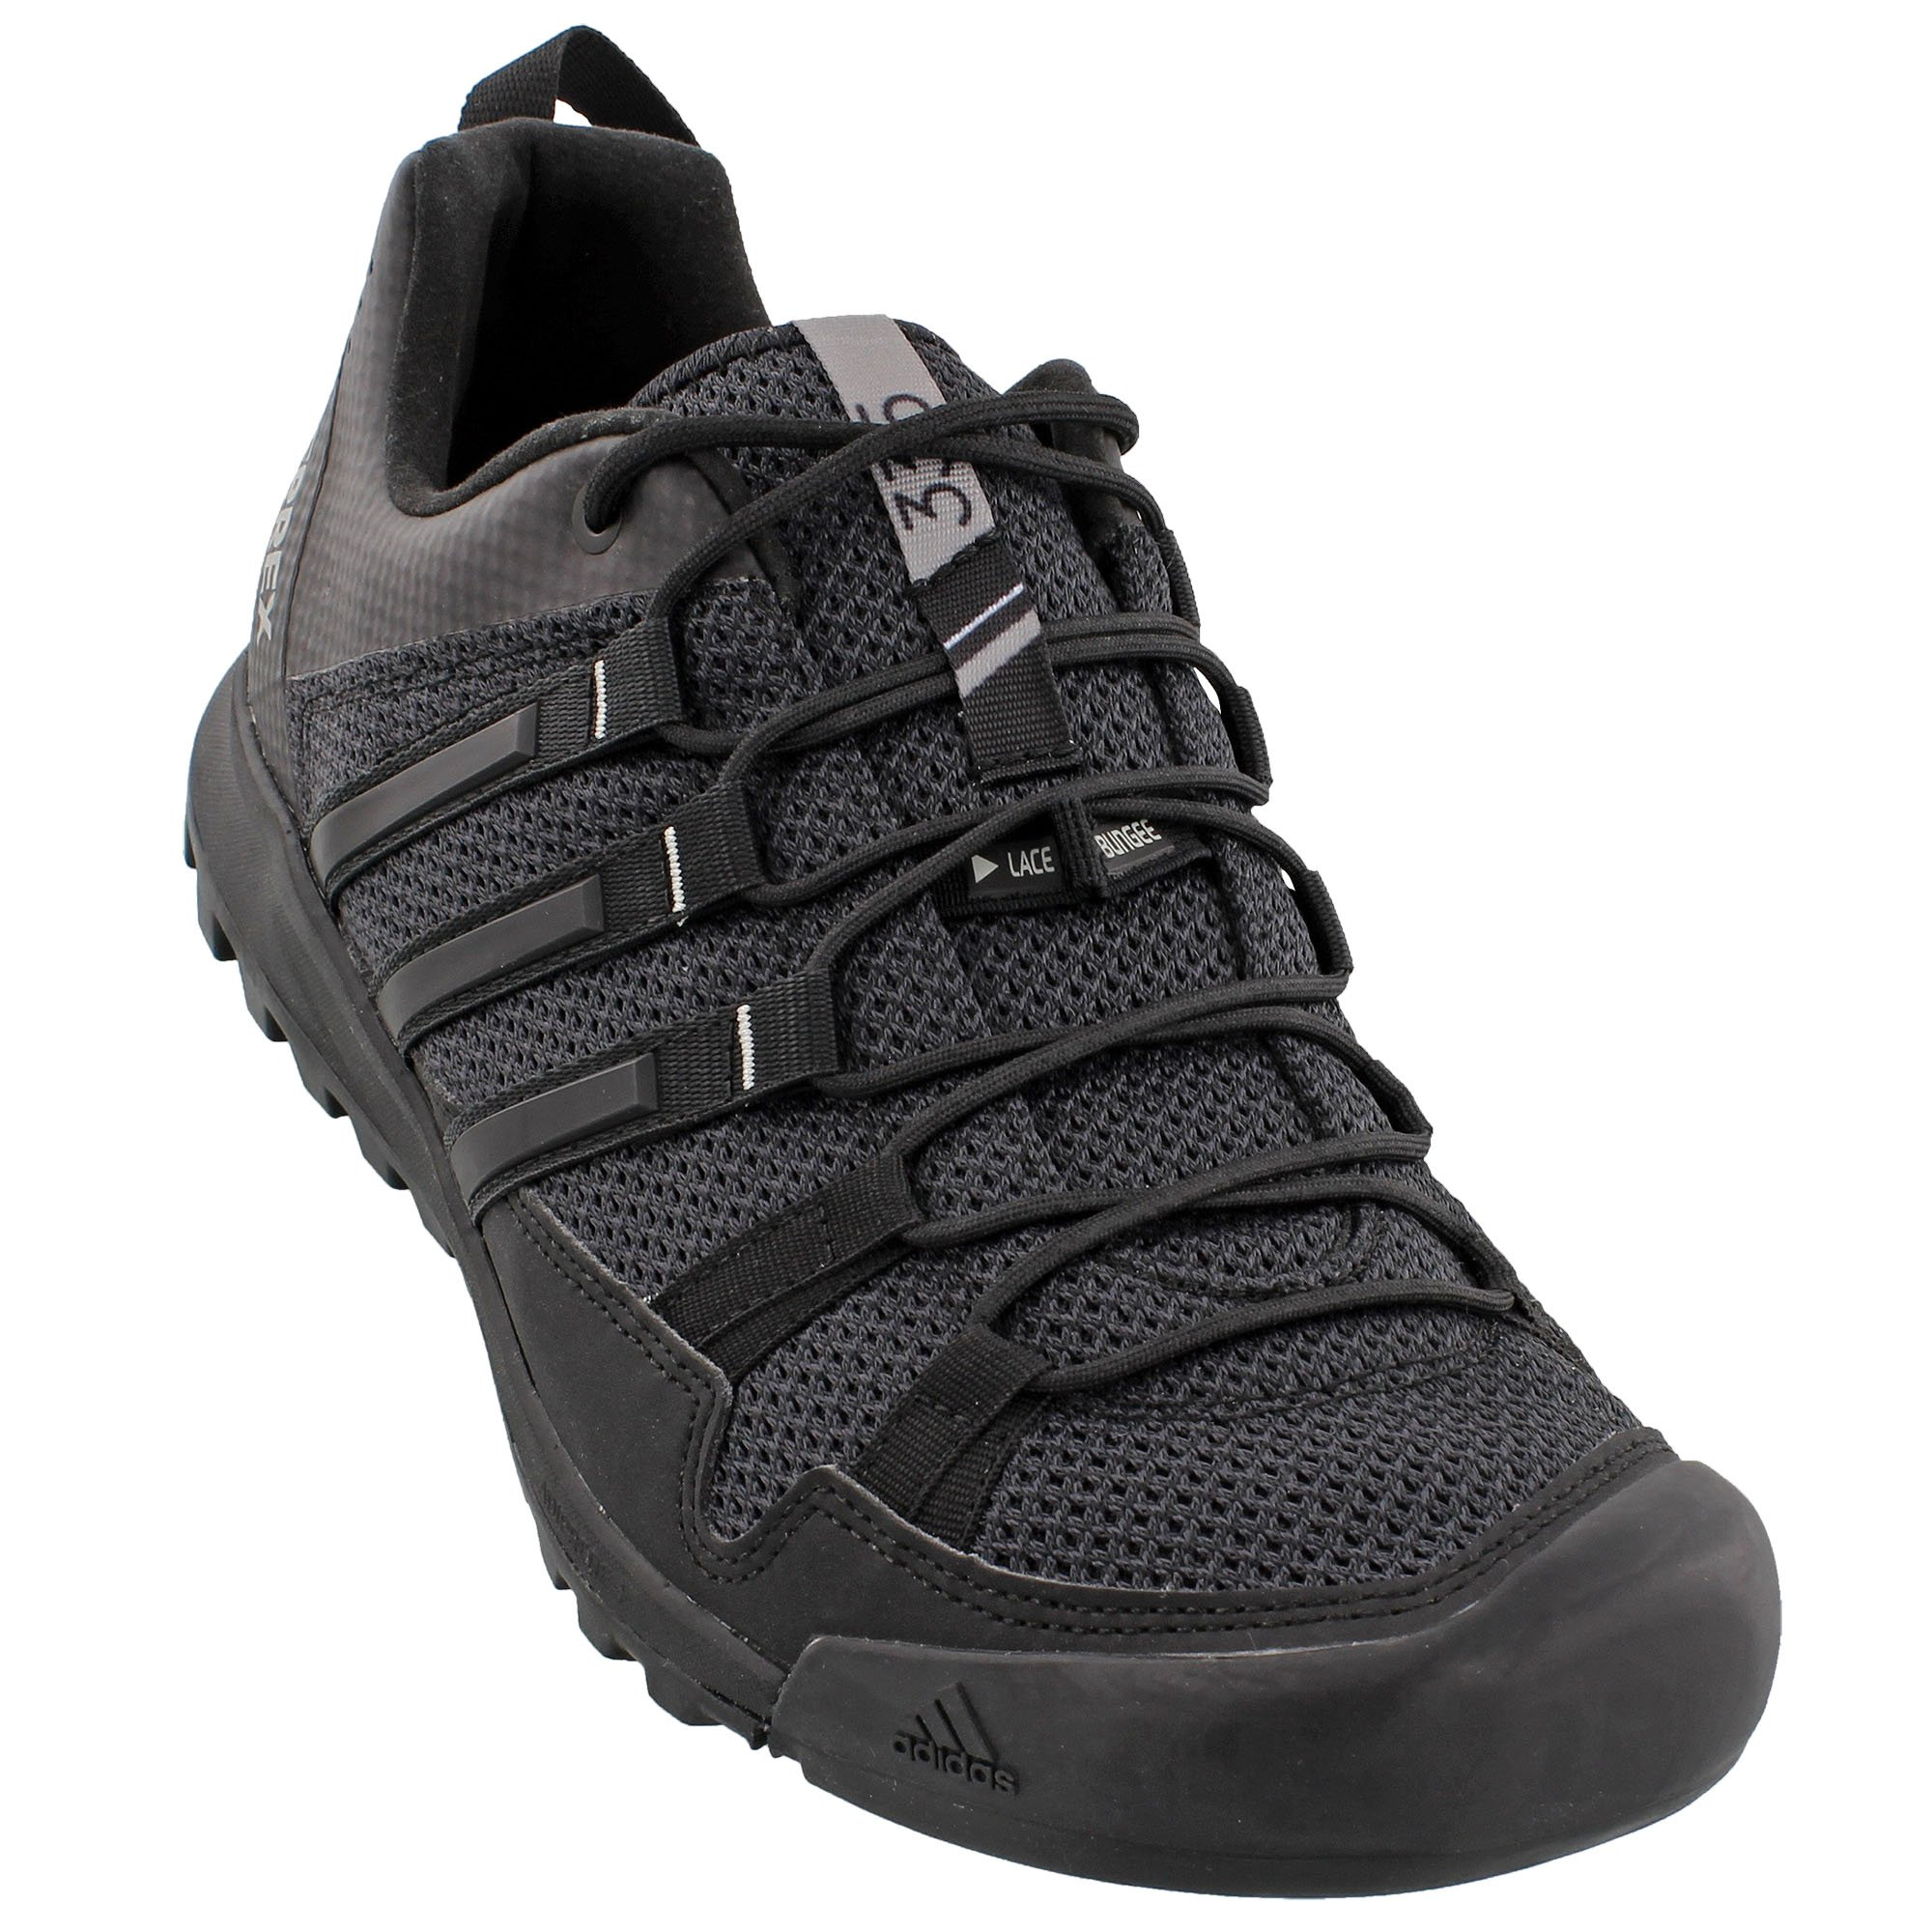 adidas Sport Performance Men's Terrex Solo Hiking Sneakers, Black Textile, Rubber, 8 M